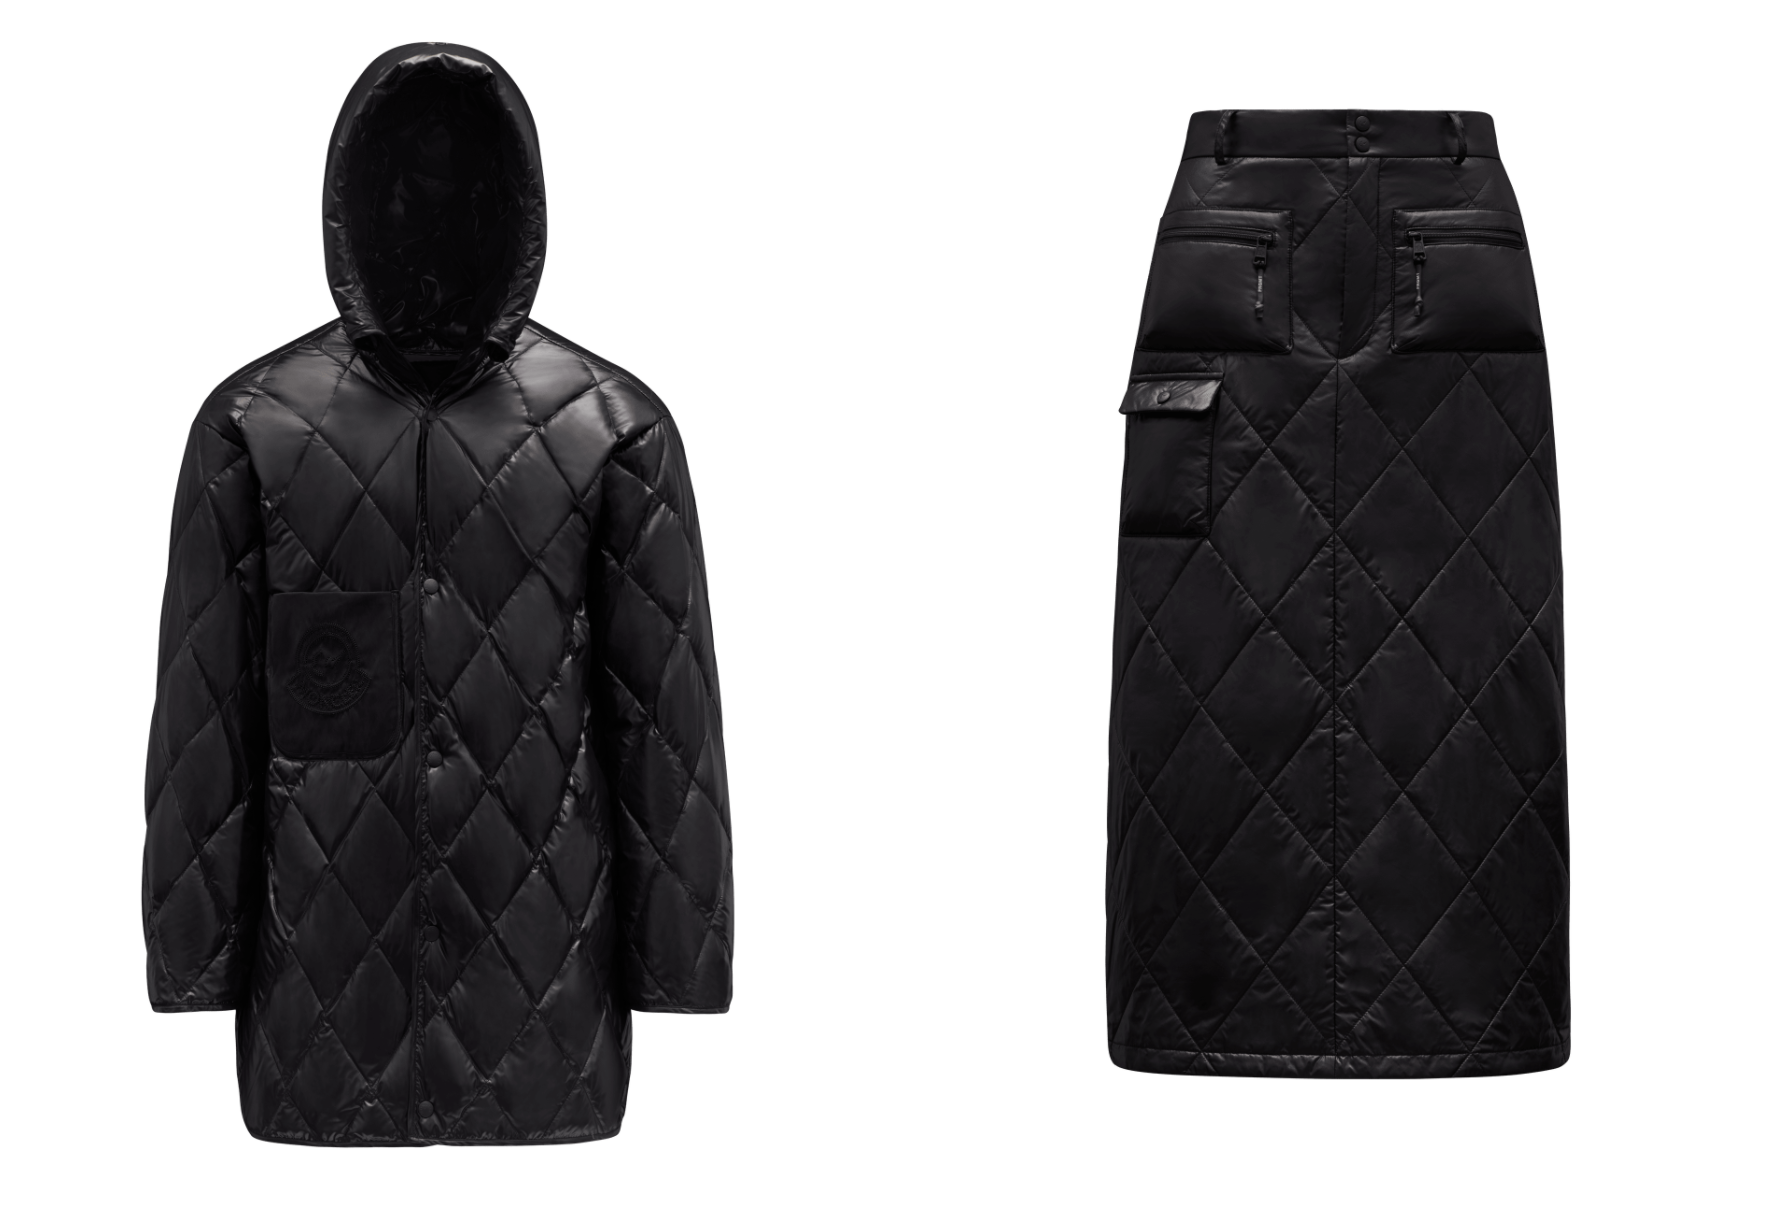 Images courtesy of Moncler.